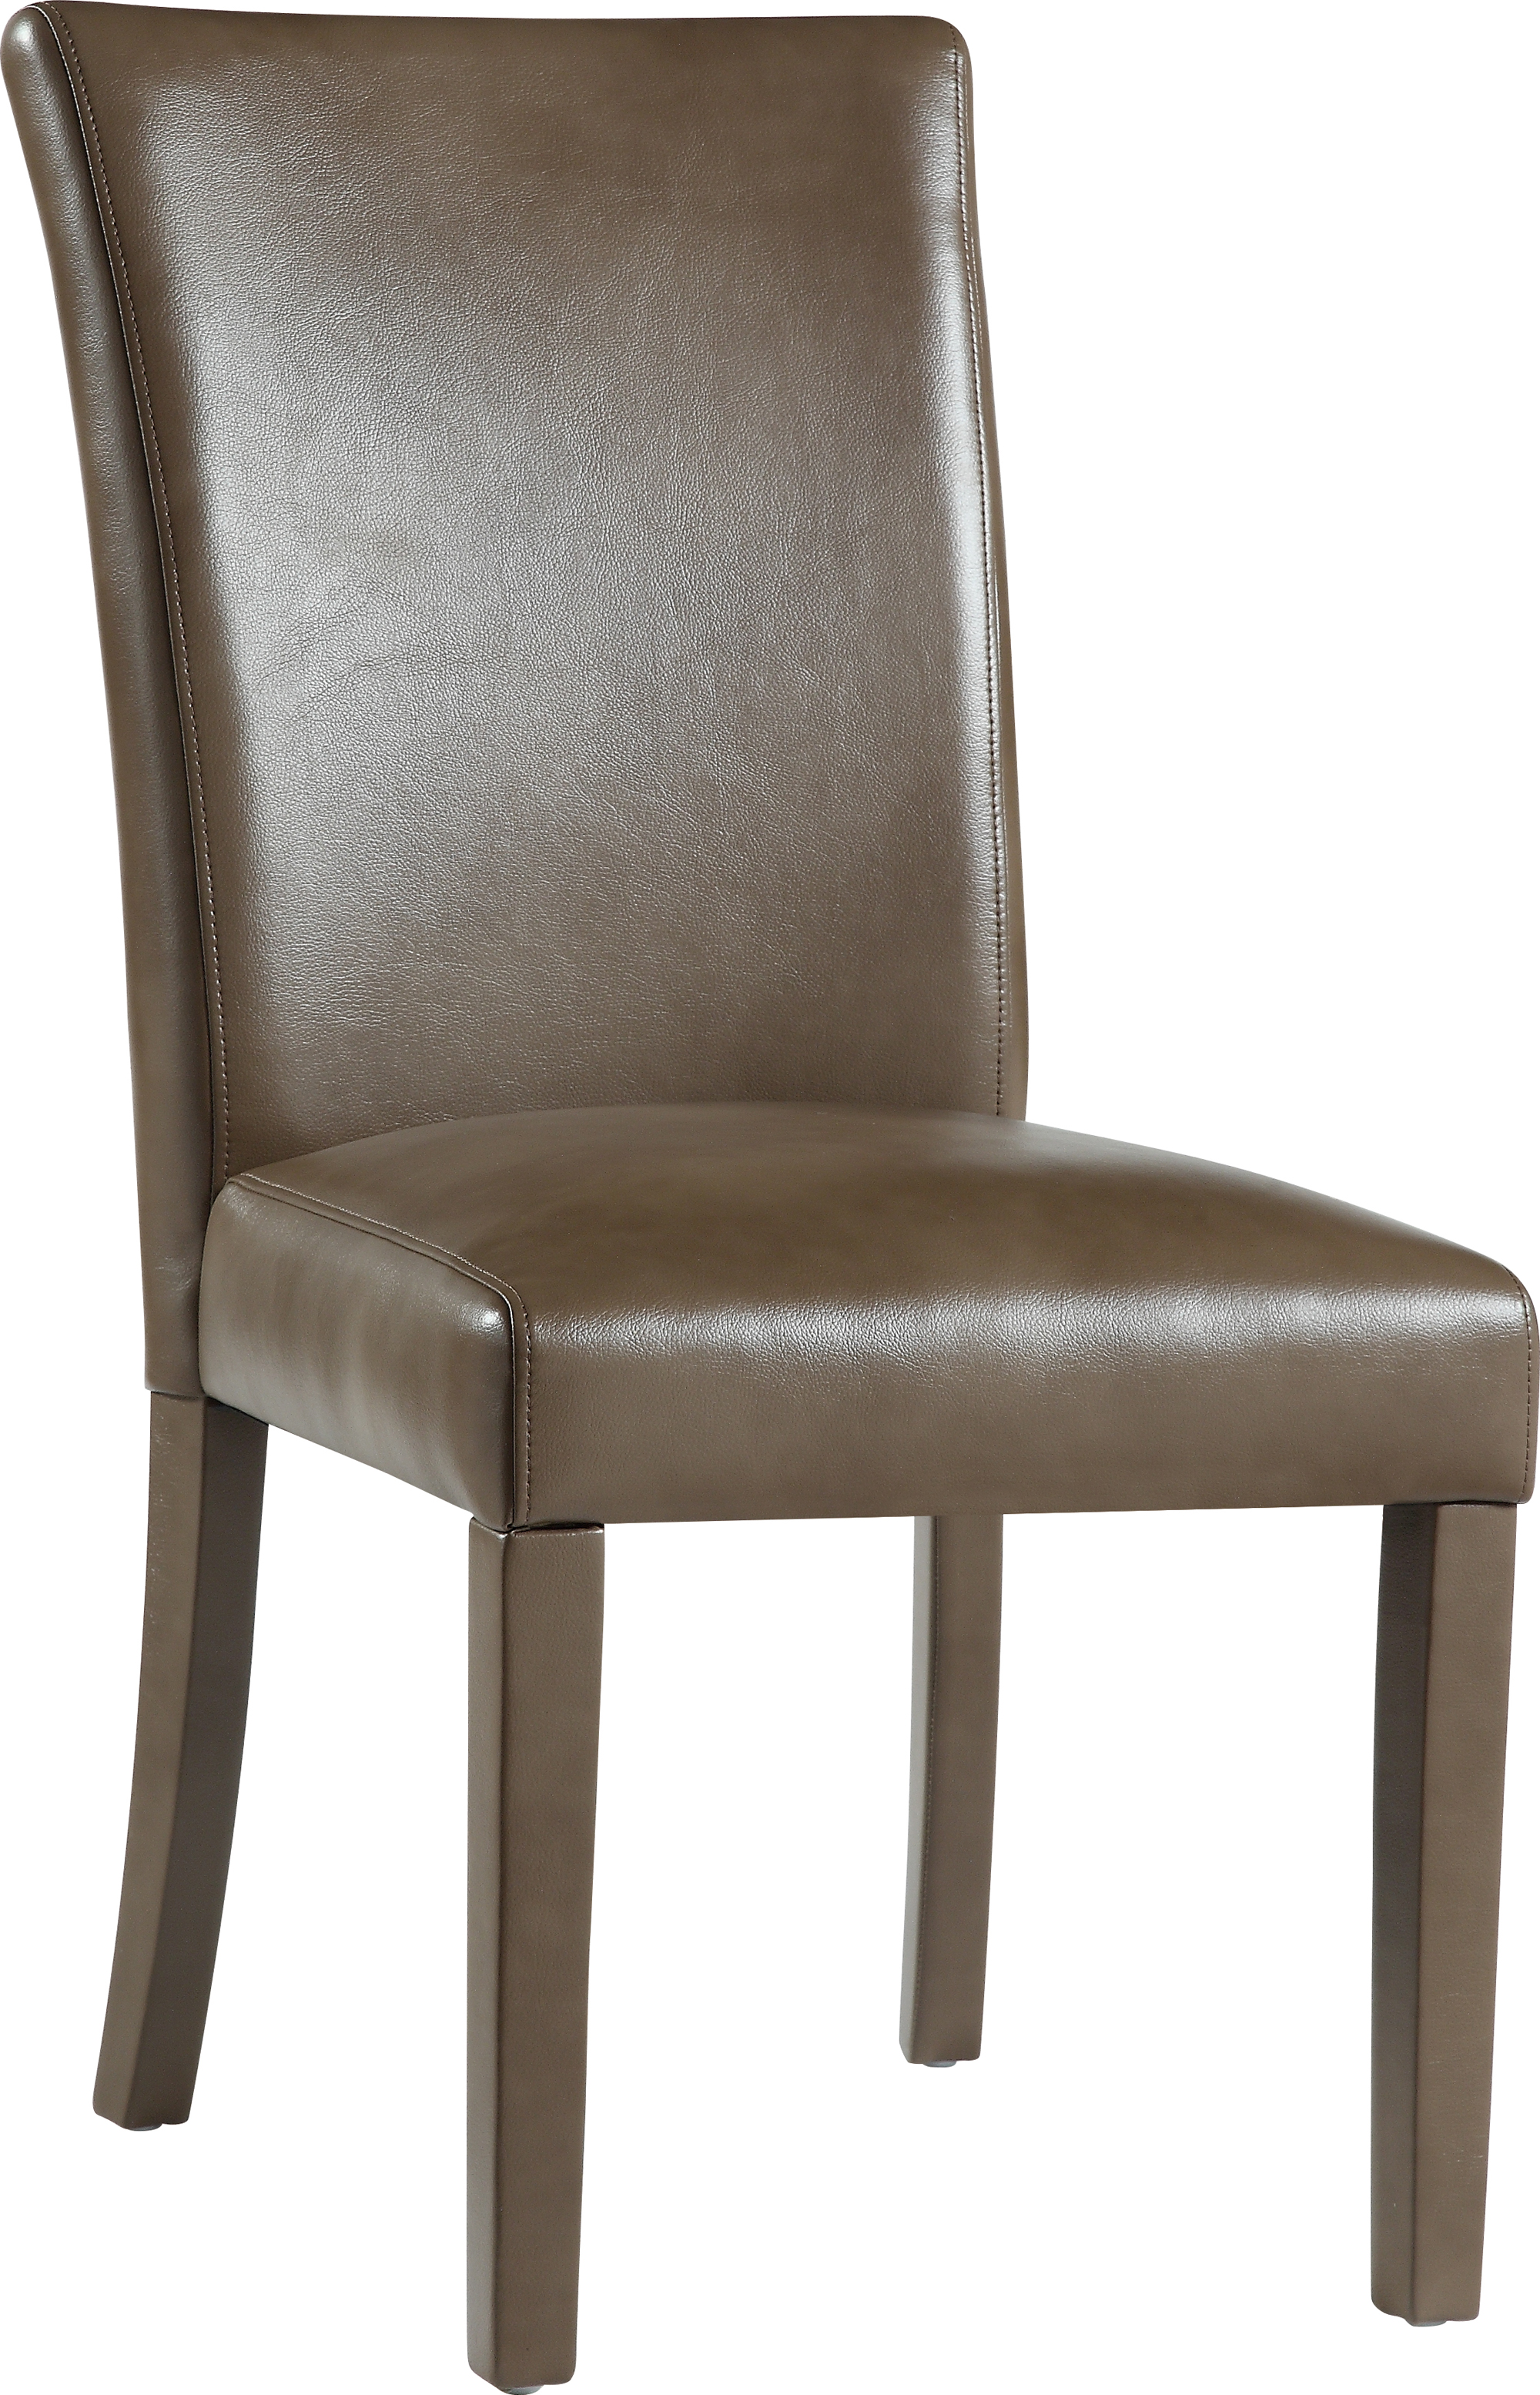 Dining Chair D6188DC Set of 2 Blanche Walnut by Global  : D6188DC BR from futonland.com size 2000 x 3110 jpeg 2621kB